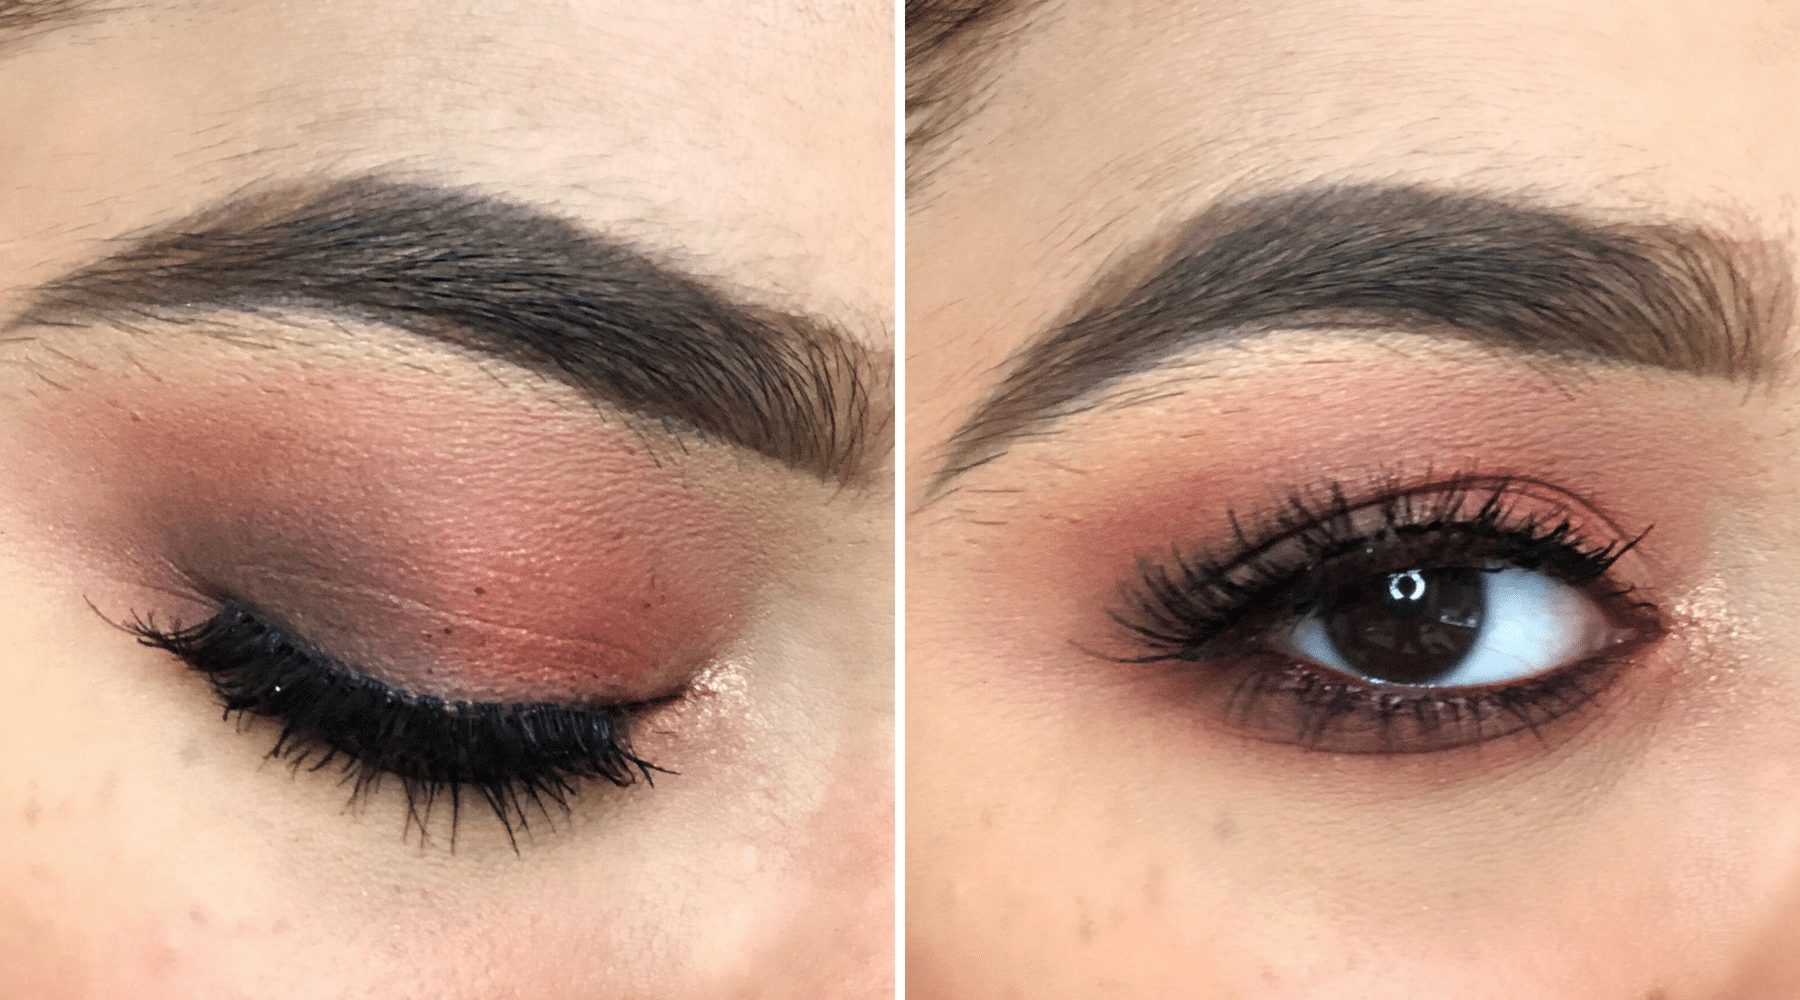 e.l.f Cosmetics Rose Gold Sunset Eyeshadow Palette